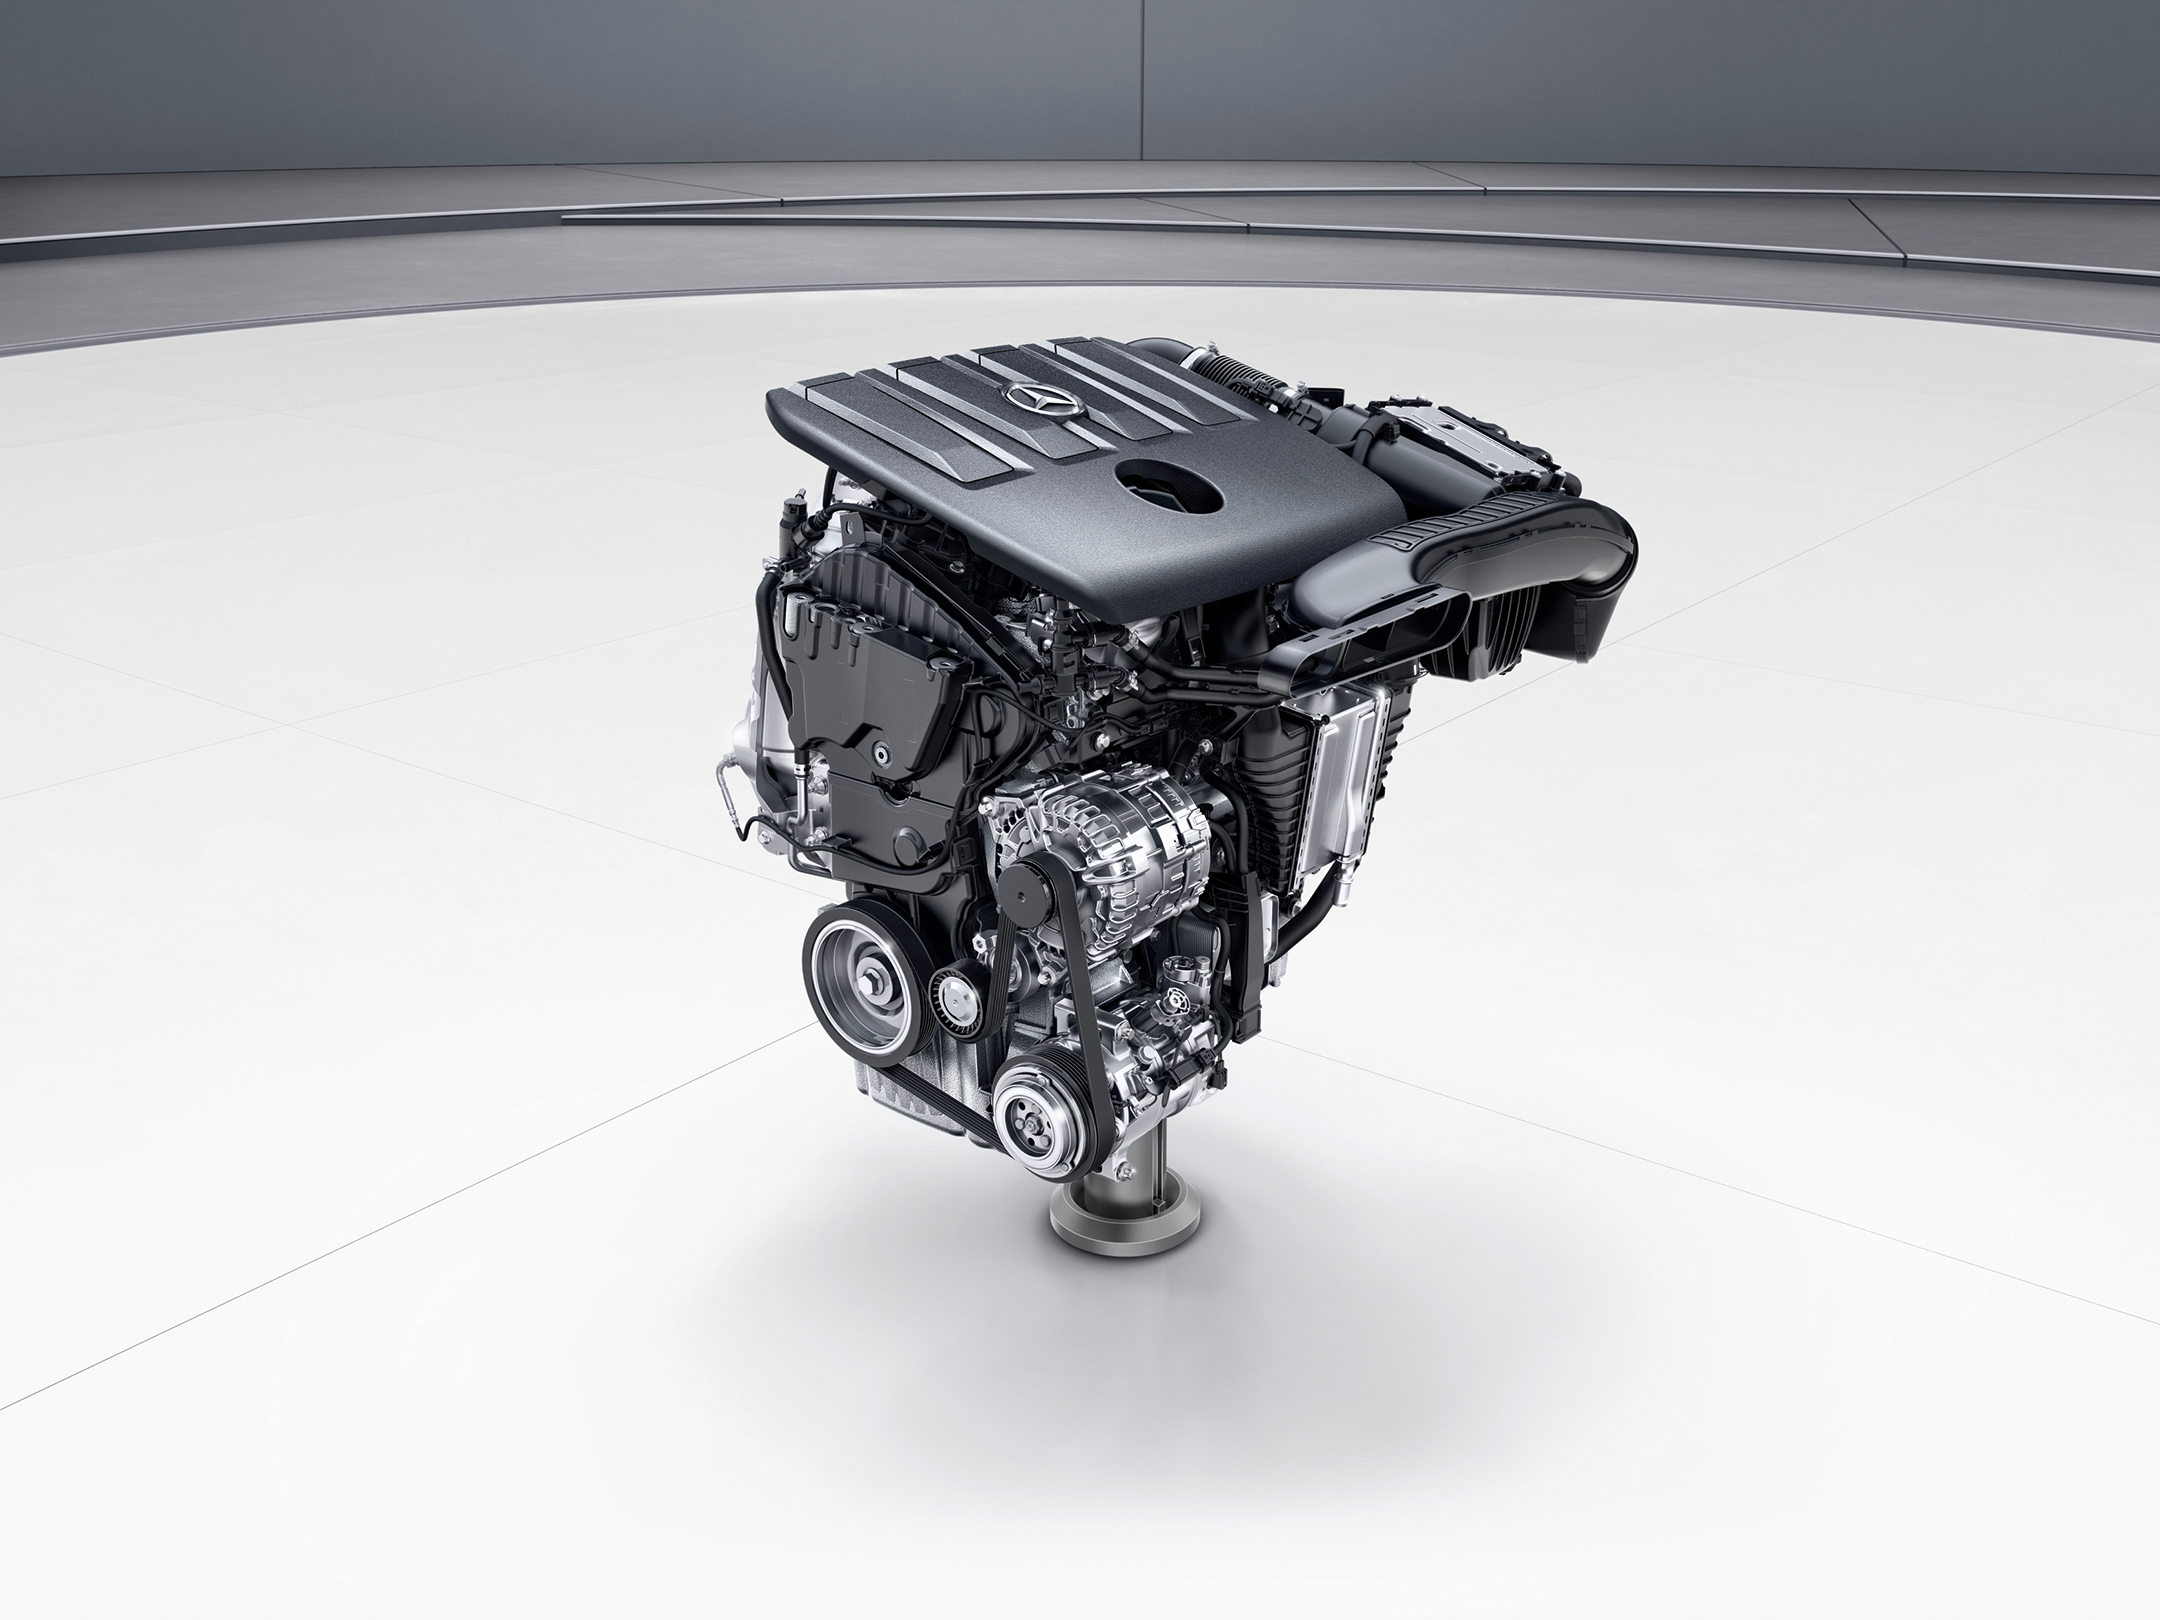 Mercedes-Benz A-Class - 2018 - engine OM608 - 4-cylinder-diesel